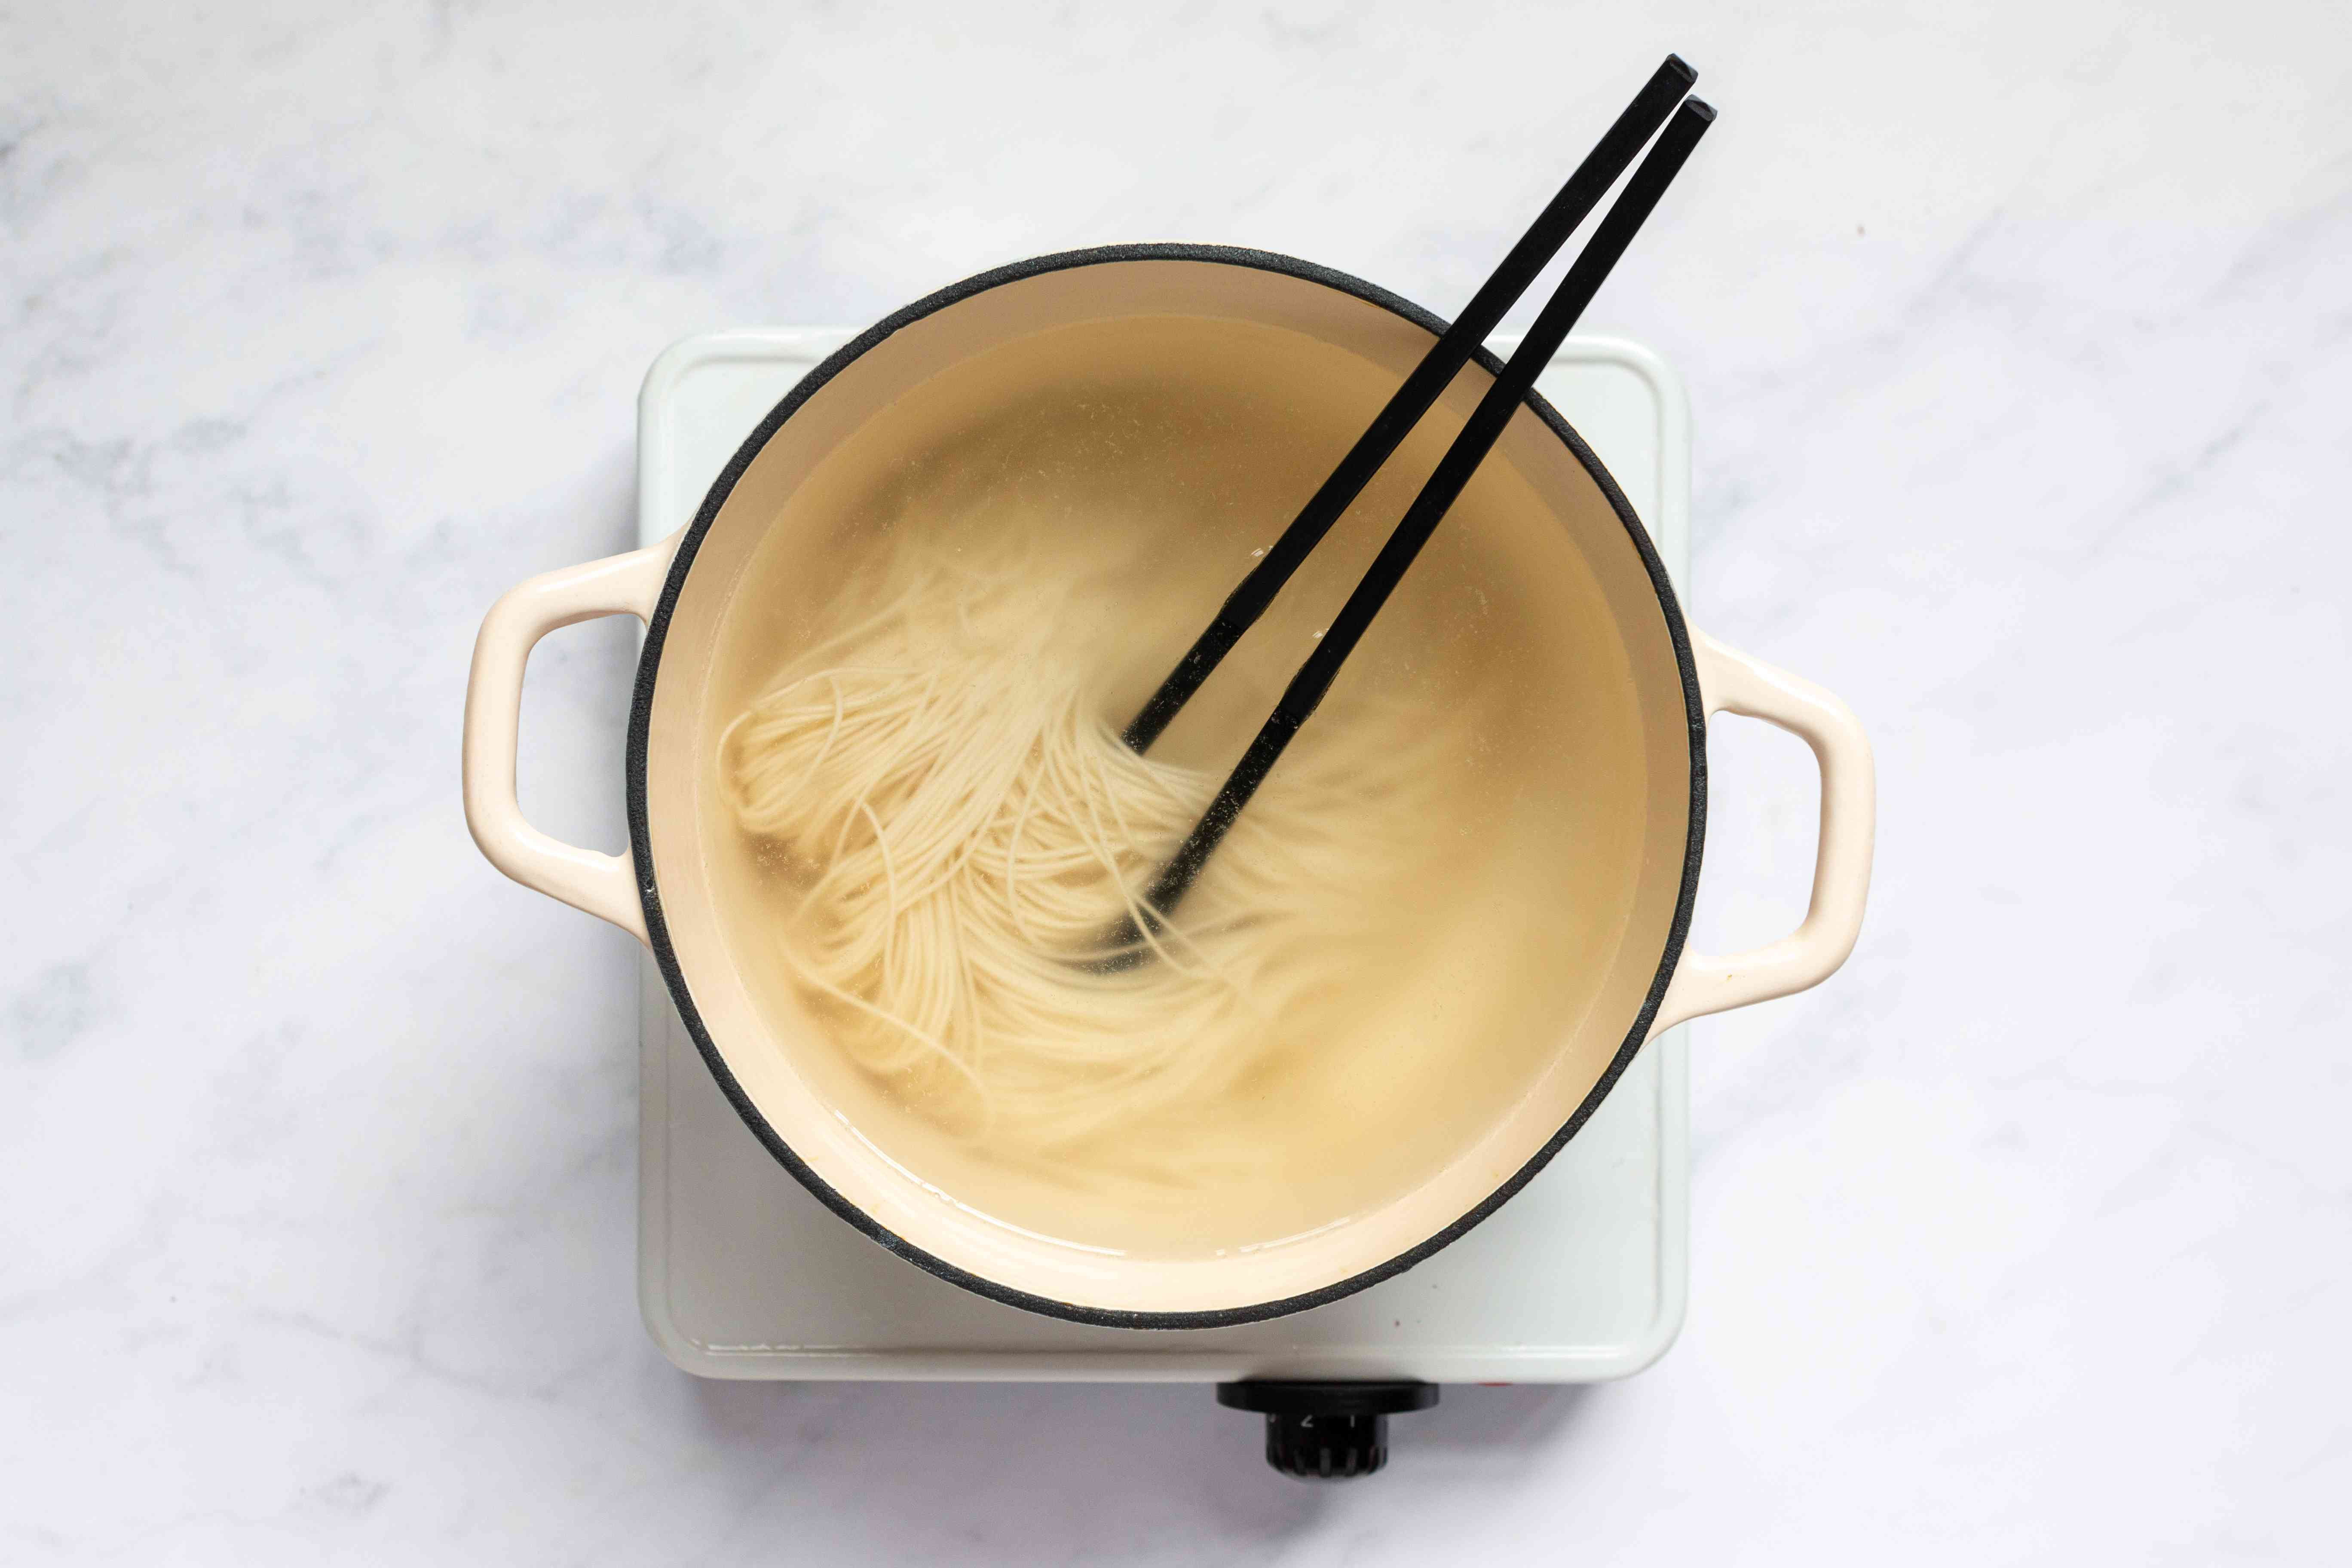 noodles in a pot with water, chopsticks